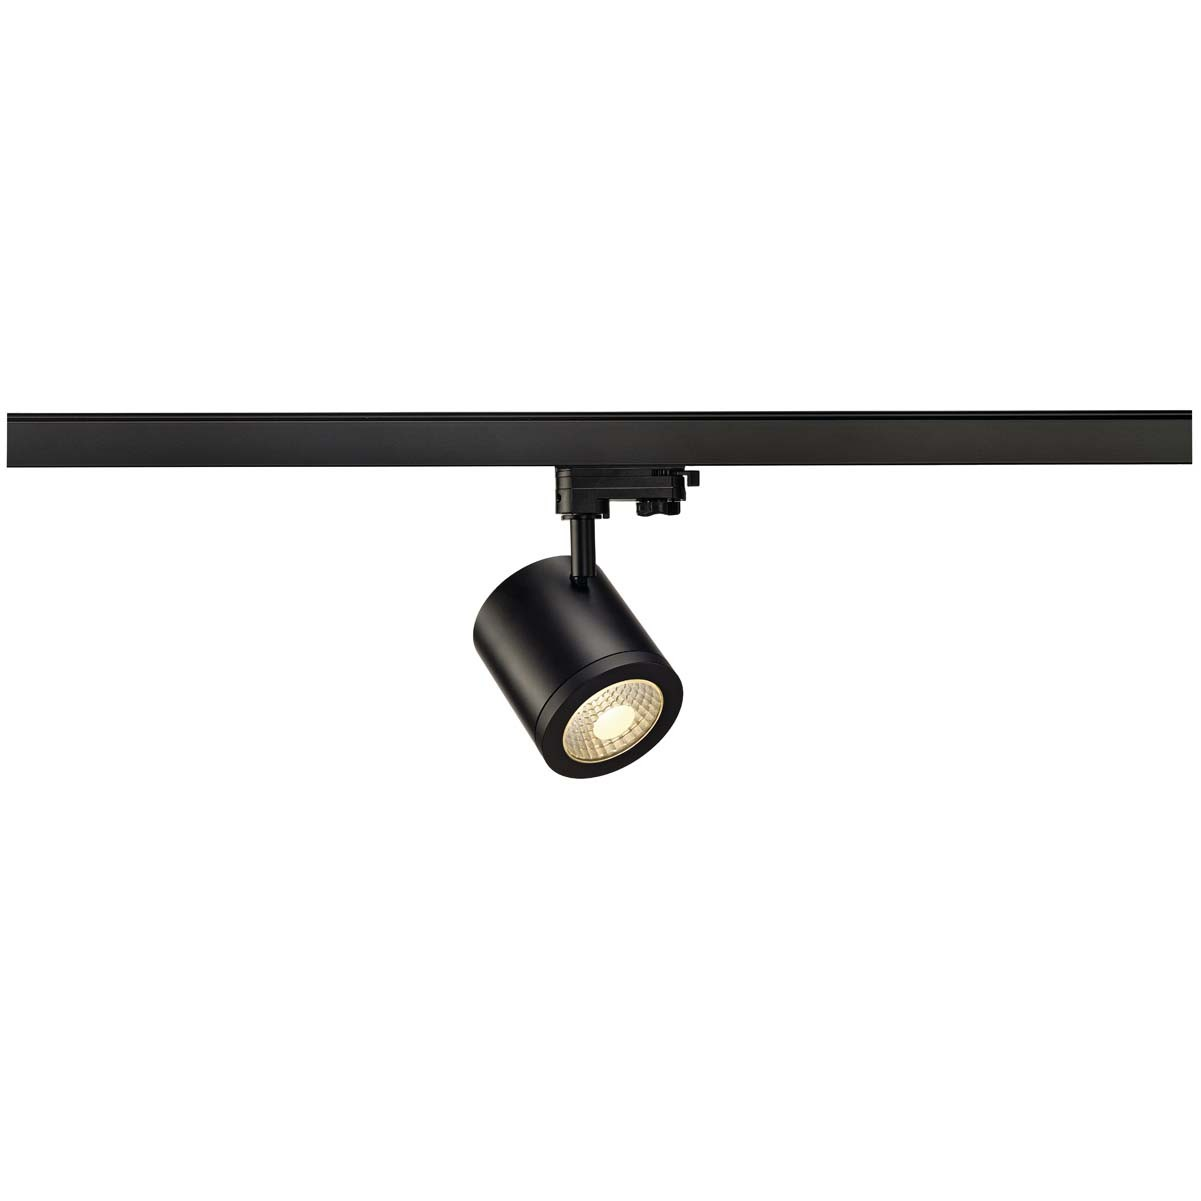 SLV 152430 Enola C9 LED 9W 3000K 55 Degree Black Eutrac 3 Circuit 240V Track Light